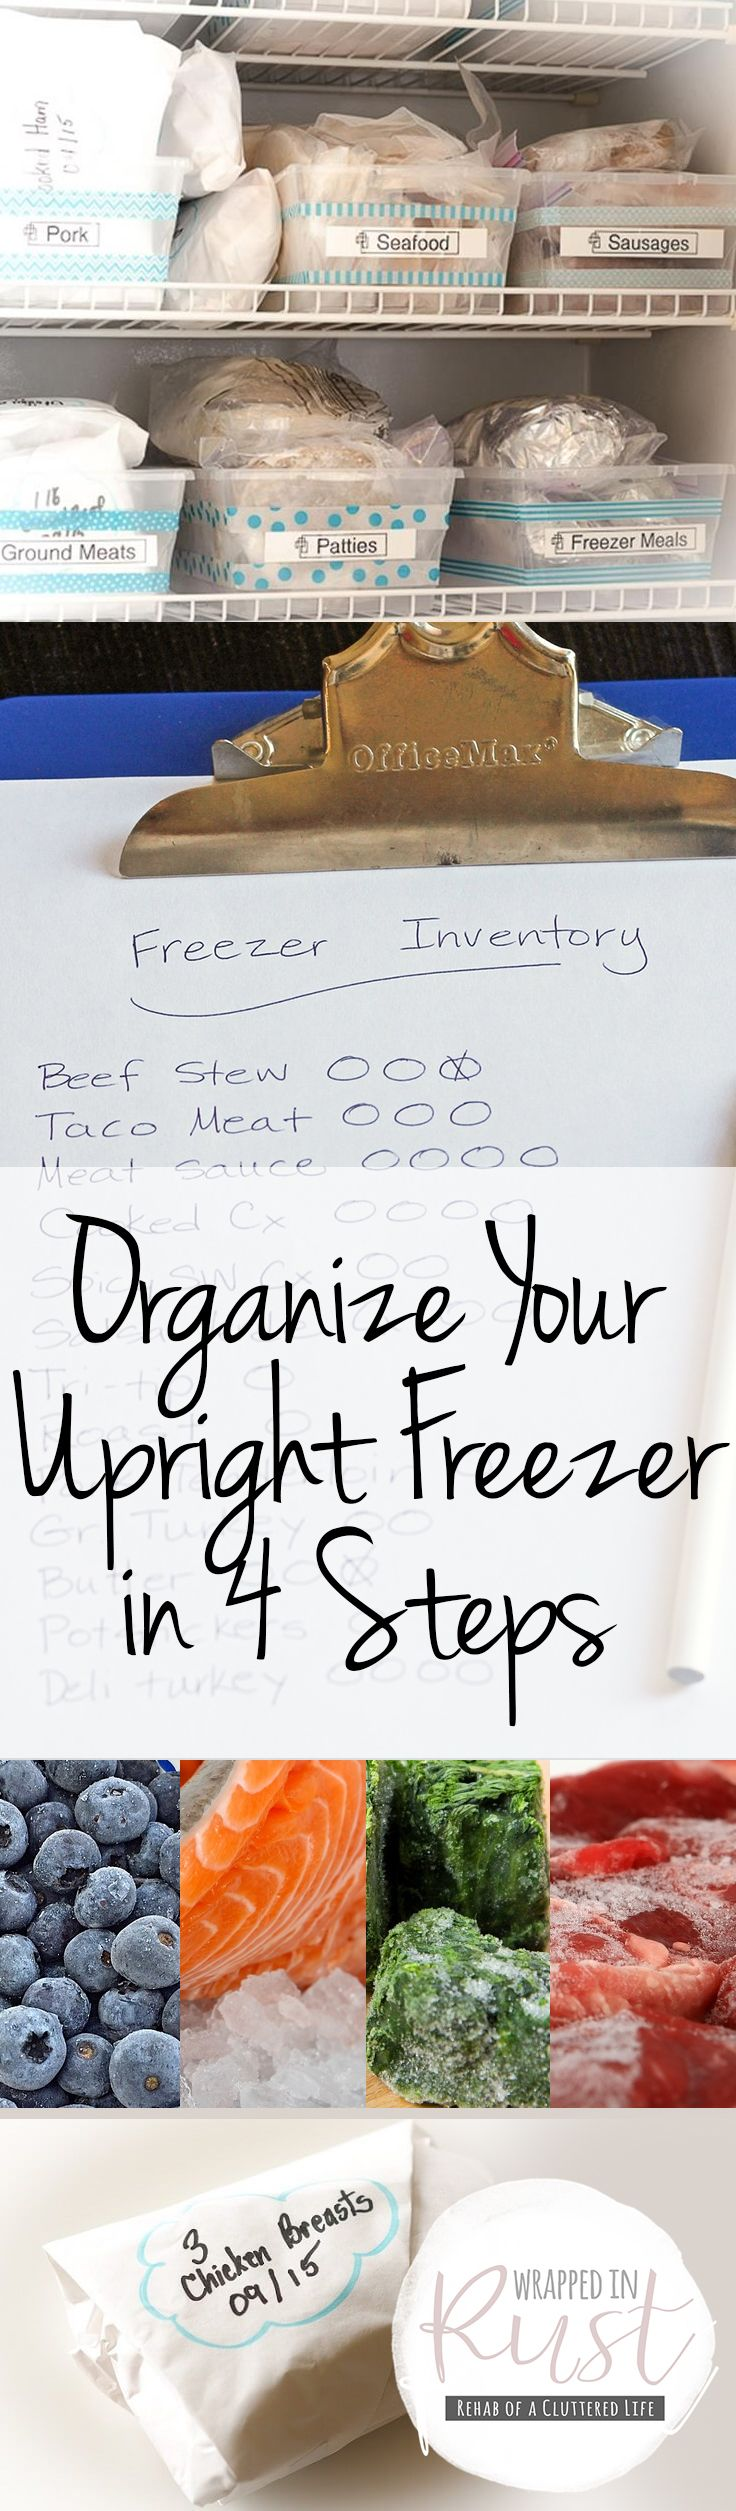 How to organize your upright freezer in no time at all!